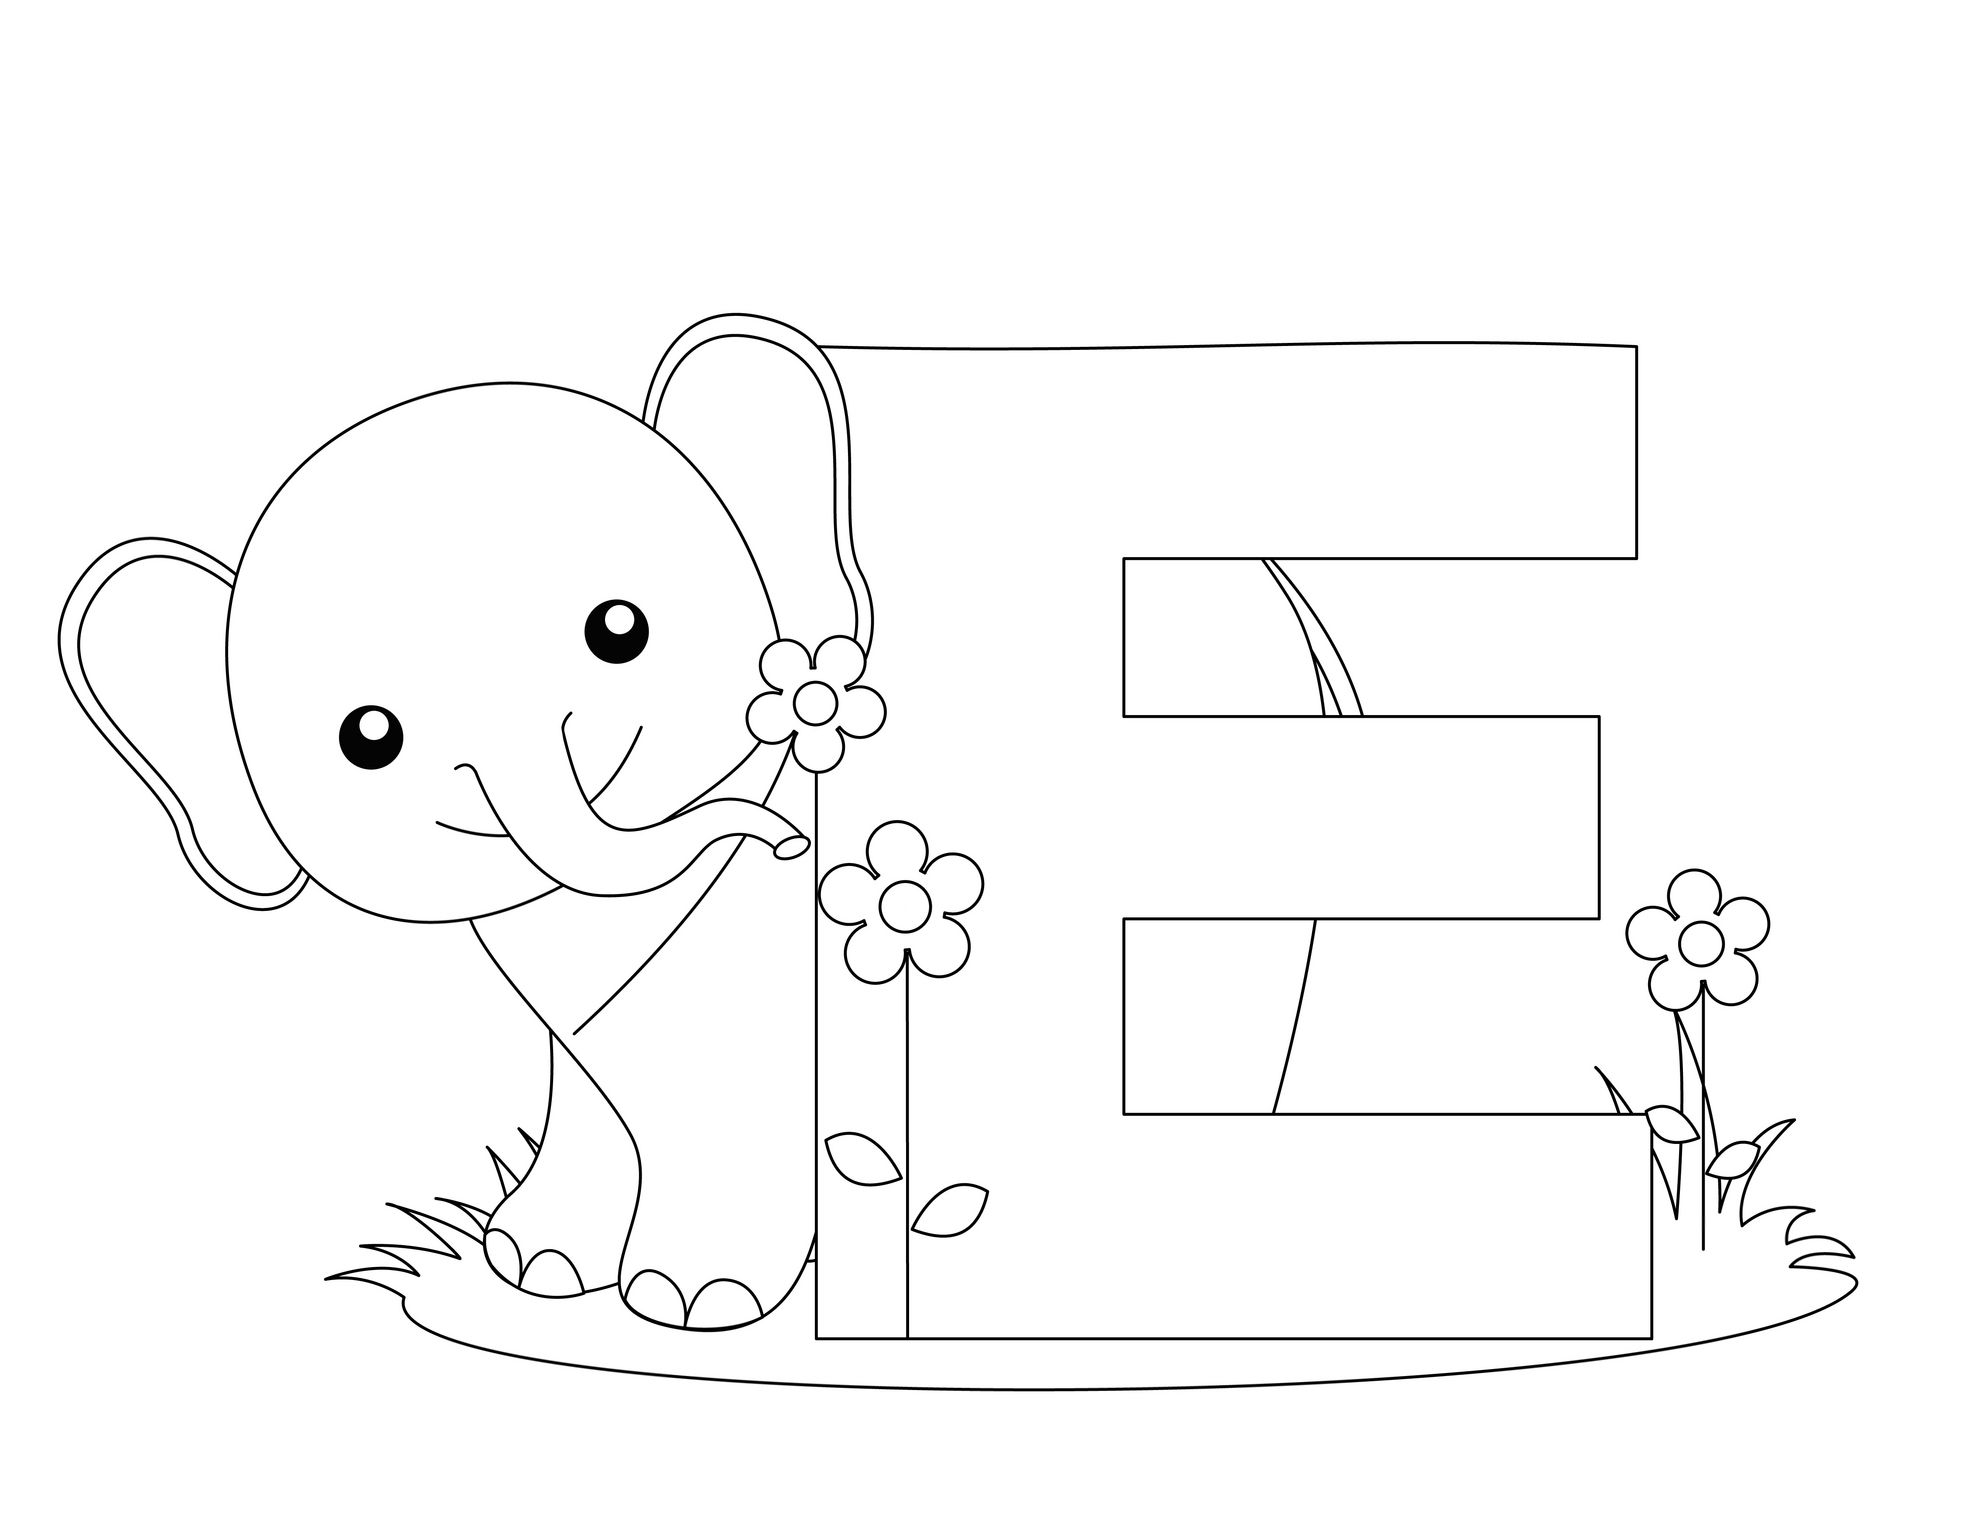 e coloring pages # 15